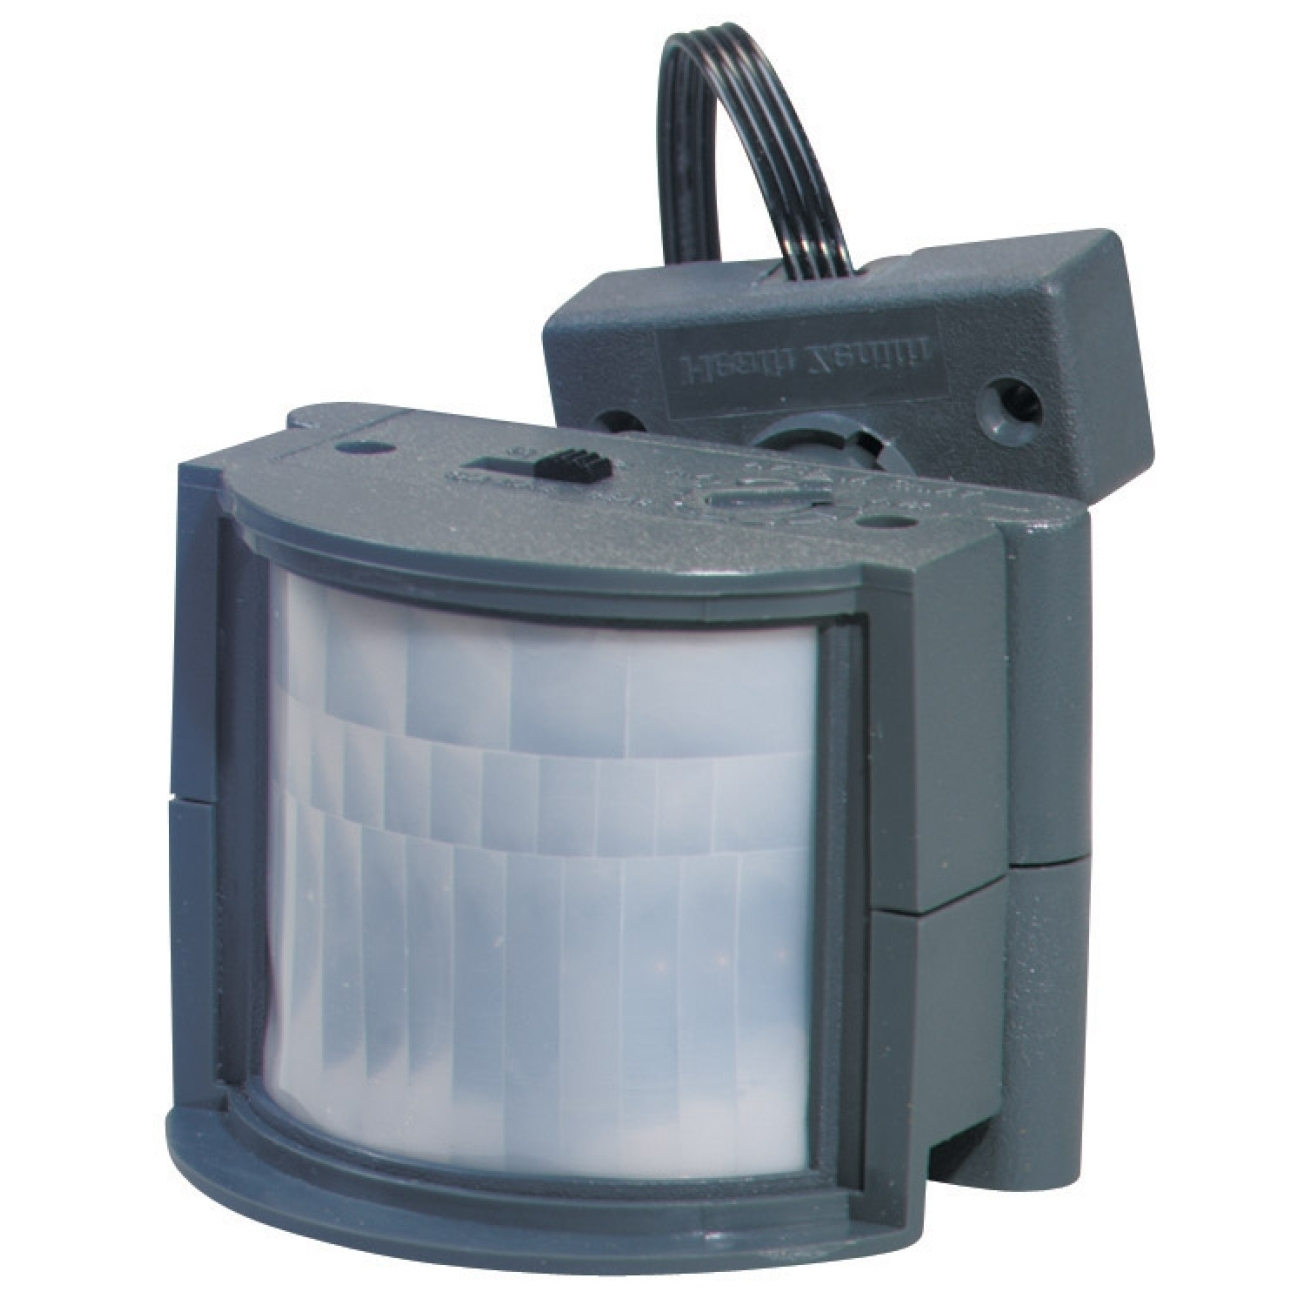 2019 Solar Spot Lights Outdoor Bunnings • Outdoor Lighting Pertaining To Outdoor Ceiling Lights At Bunnings (View 18 of 20)